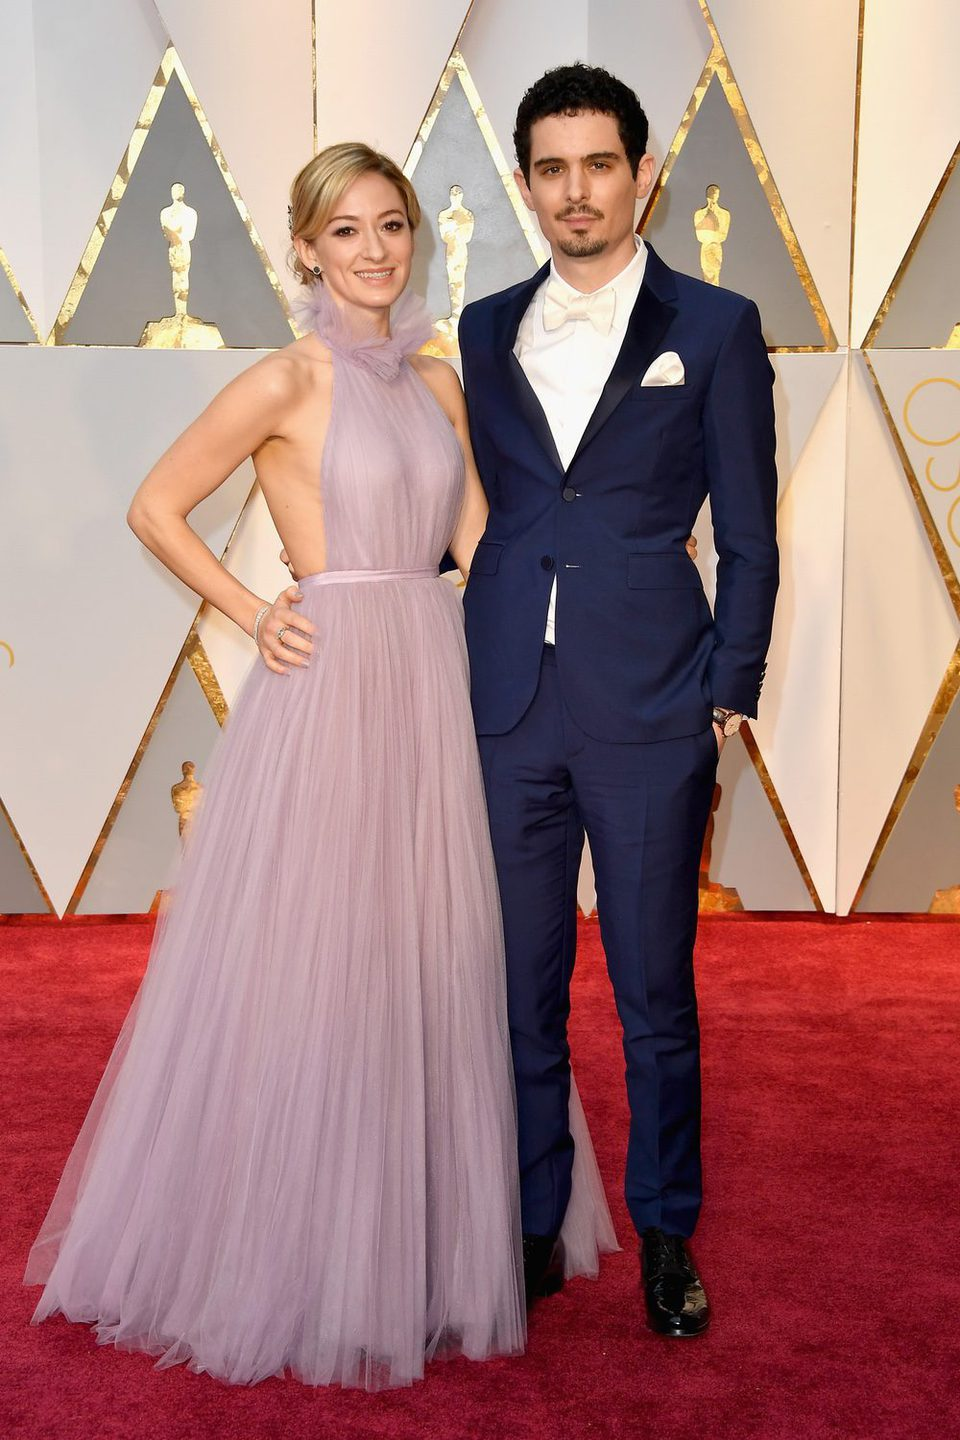 Damien Chazelle and Olivia Hamilton at the red carpet of the Oscars 2017